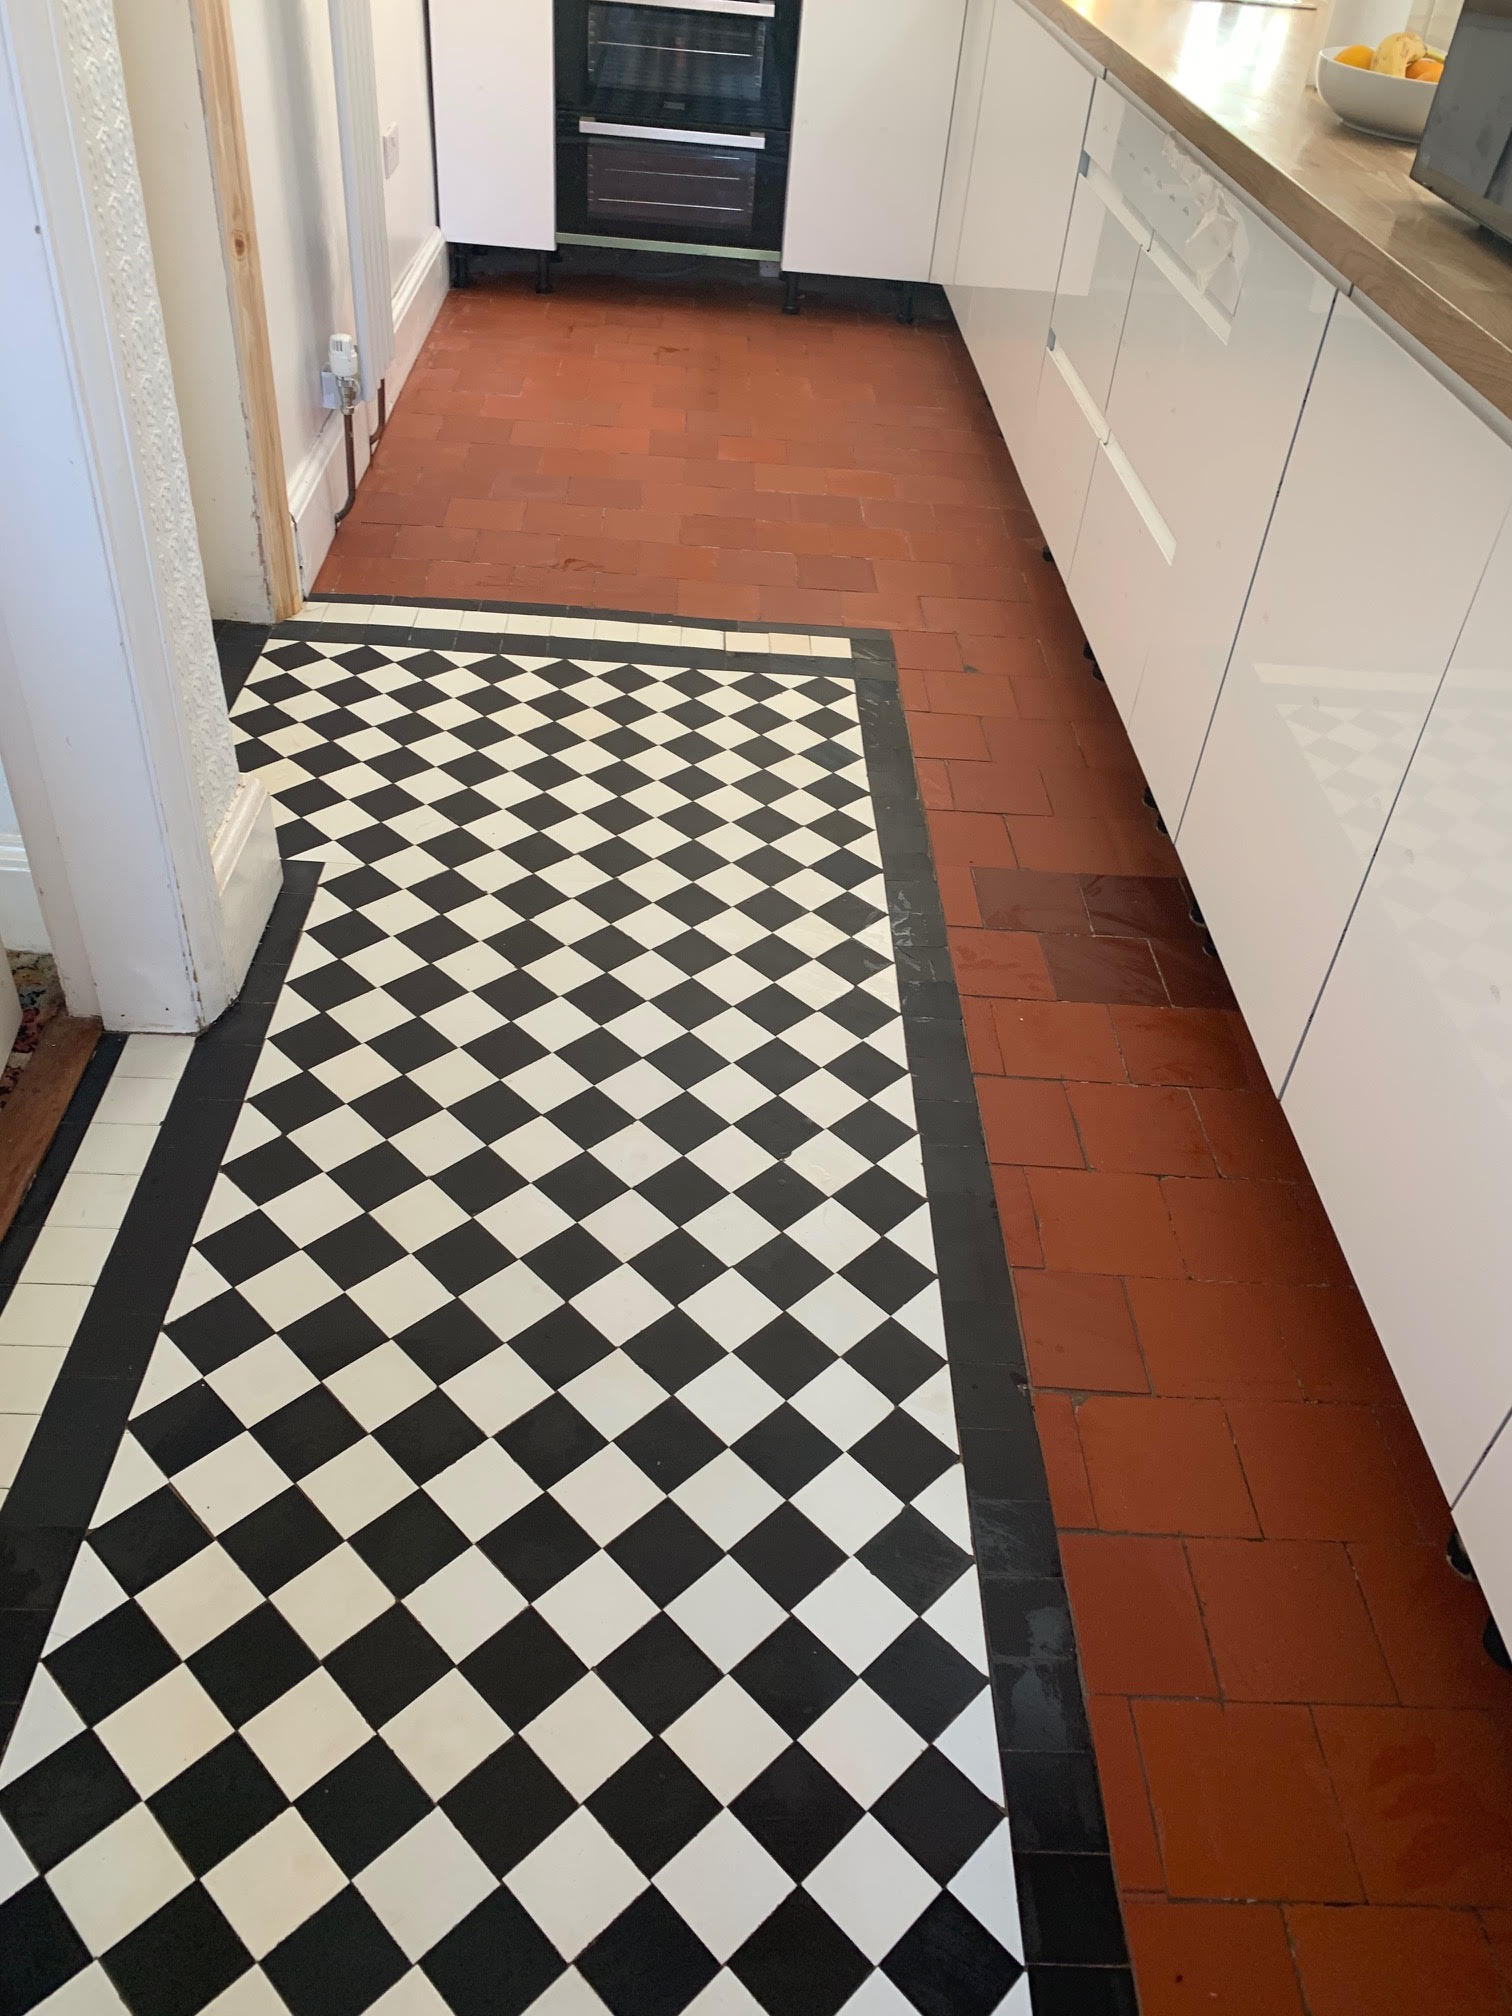 Quarry Tiled Kitchen Floor During Renovation in Rubgy